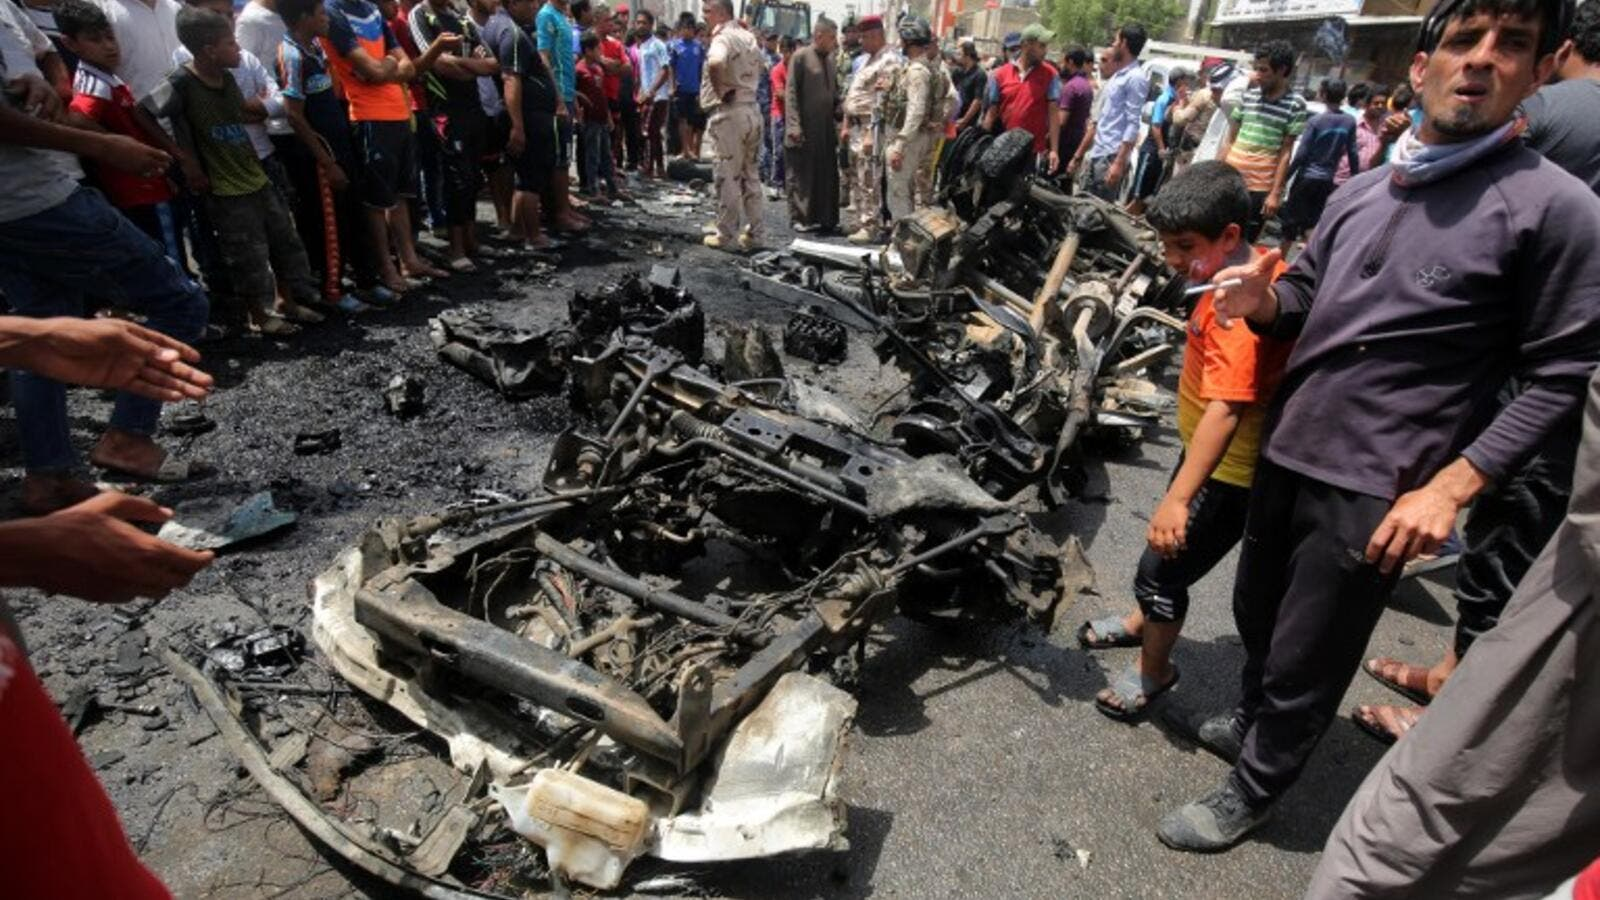 Iraqis look at the damage following a car bomb attack in Sadr City, a Shiite area north of the capital Baghdad, on May 11, 2016. (AFP/Ahmad al-Rubaye)